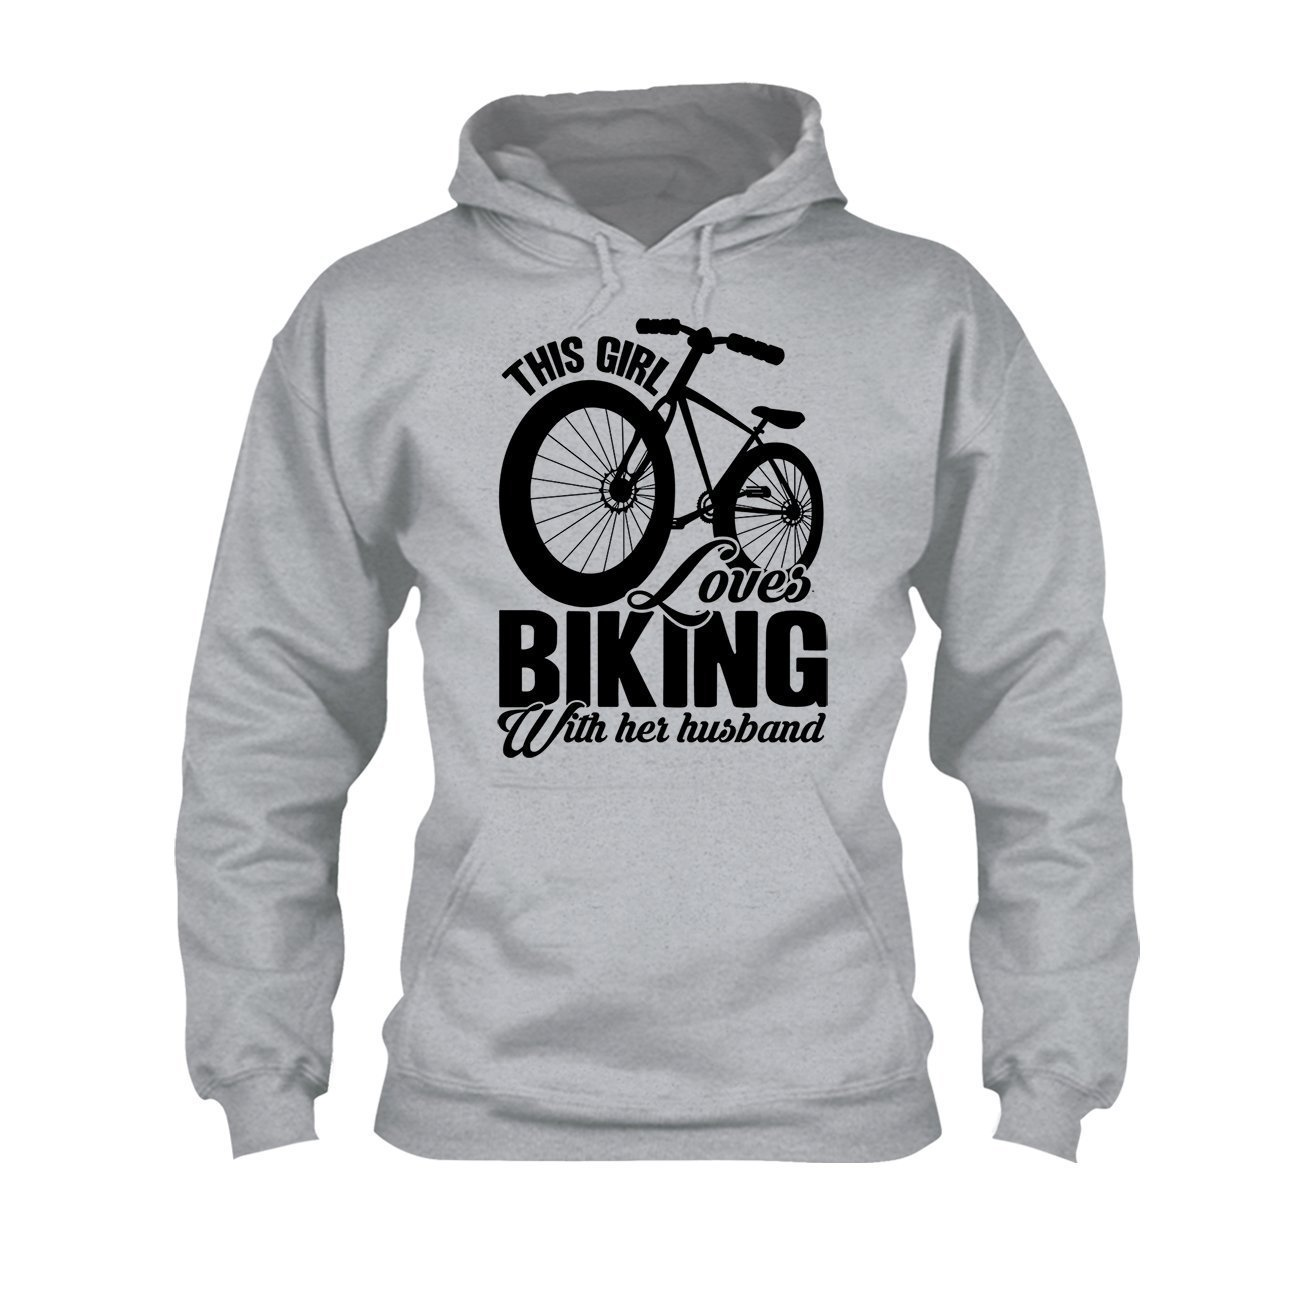 Loves Biking with Her Husband Tee Shirt Hoodie Cool Sweatshirt